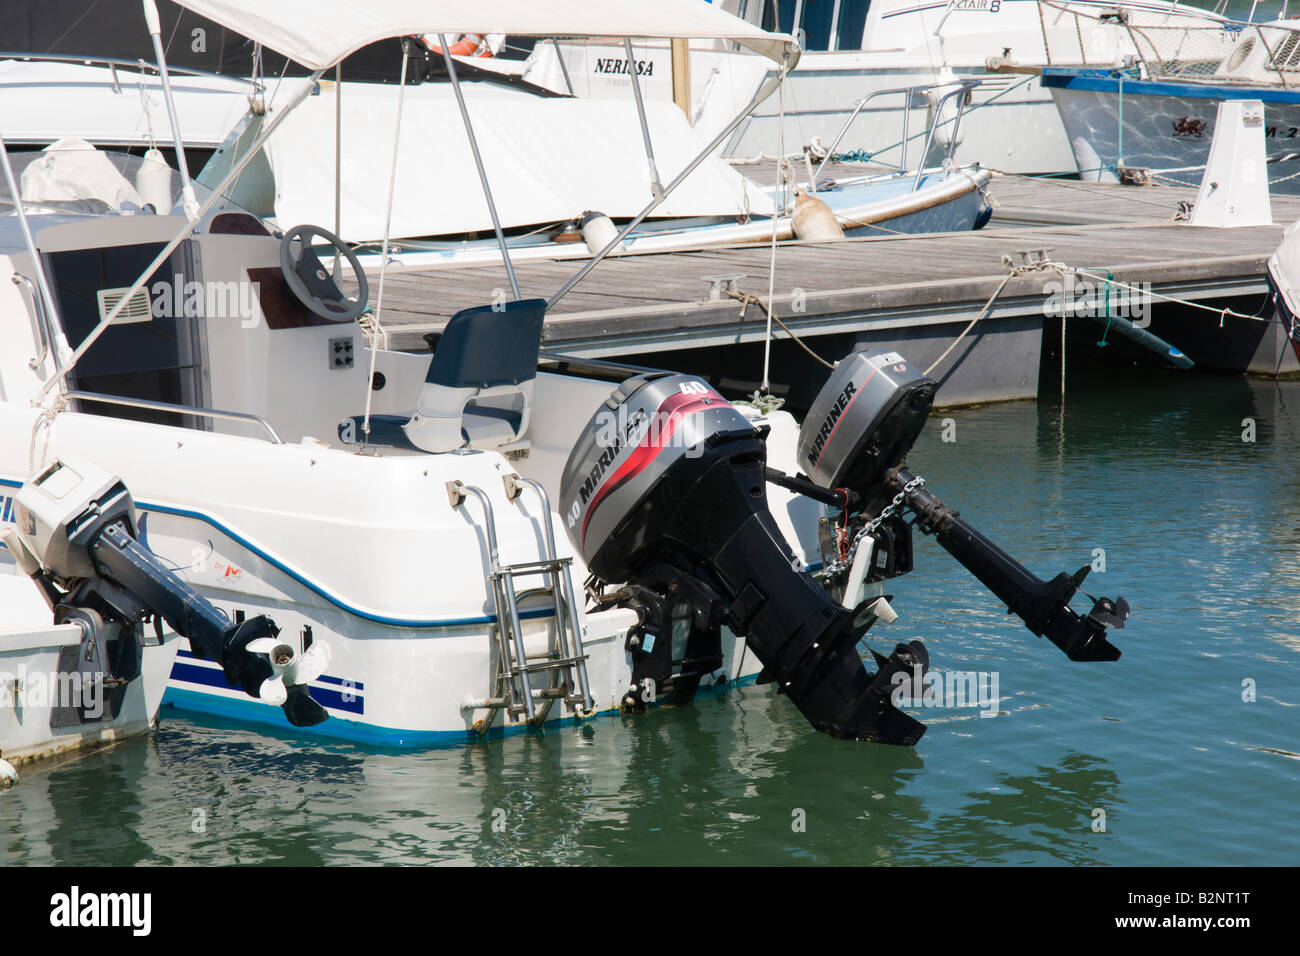 Costa Blanca Spain twin or dua outboard motors on boat Mariner brand - Stock Image